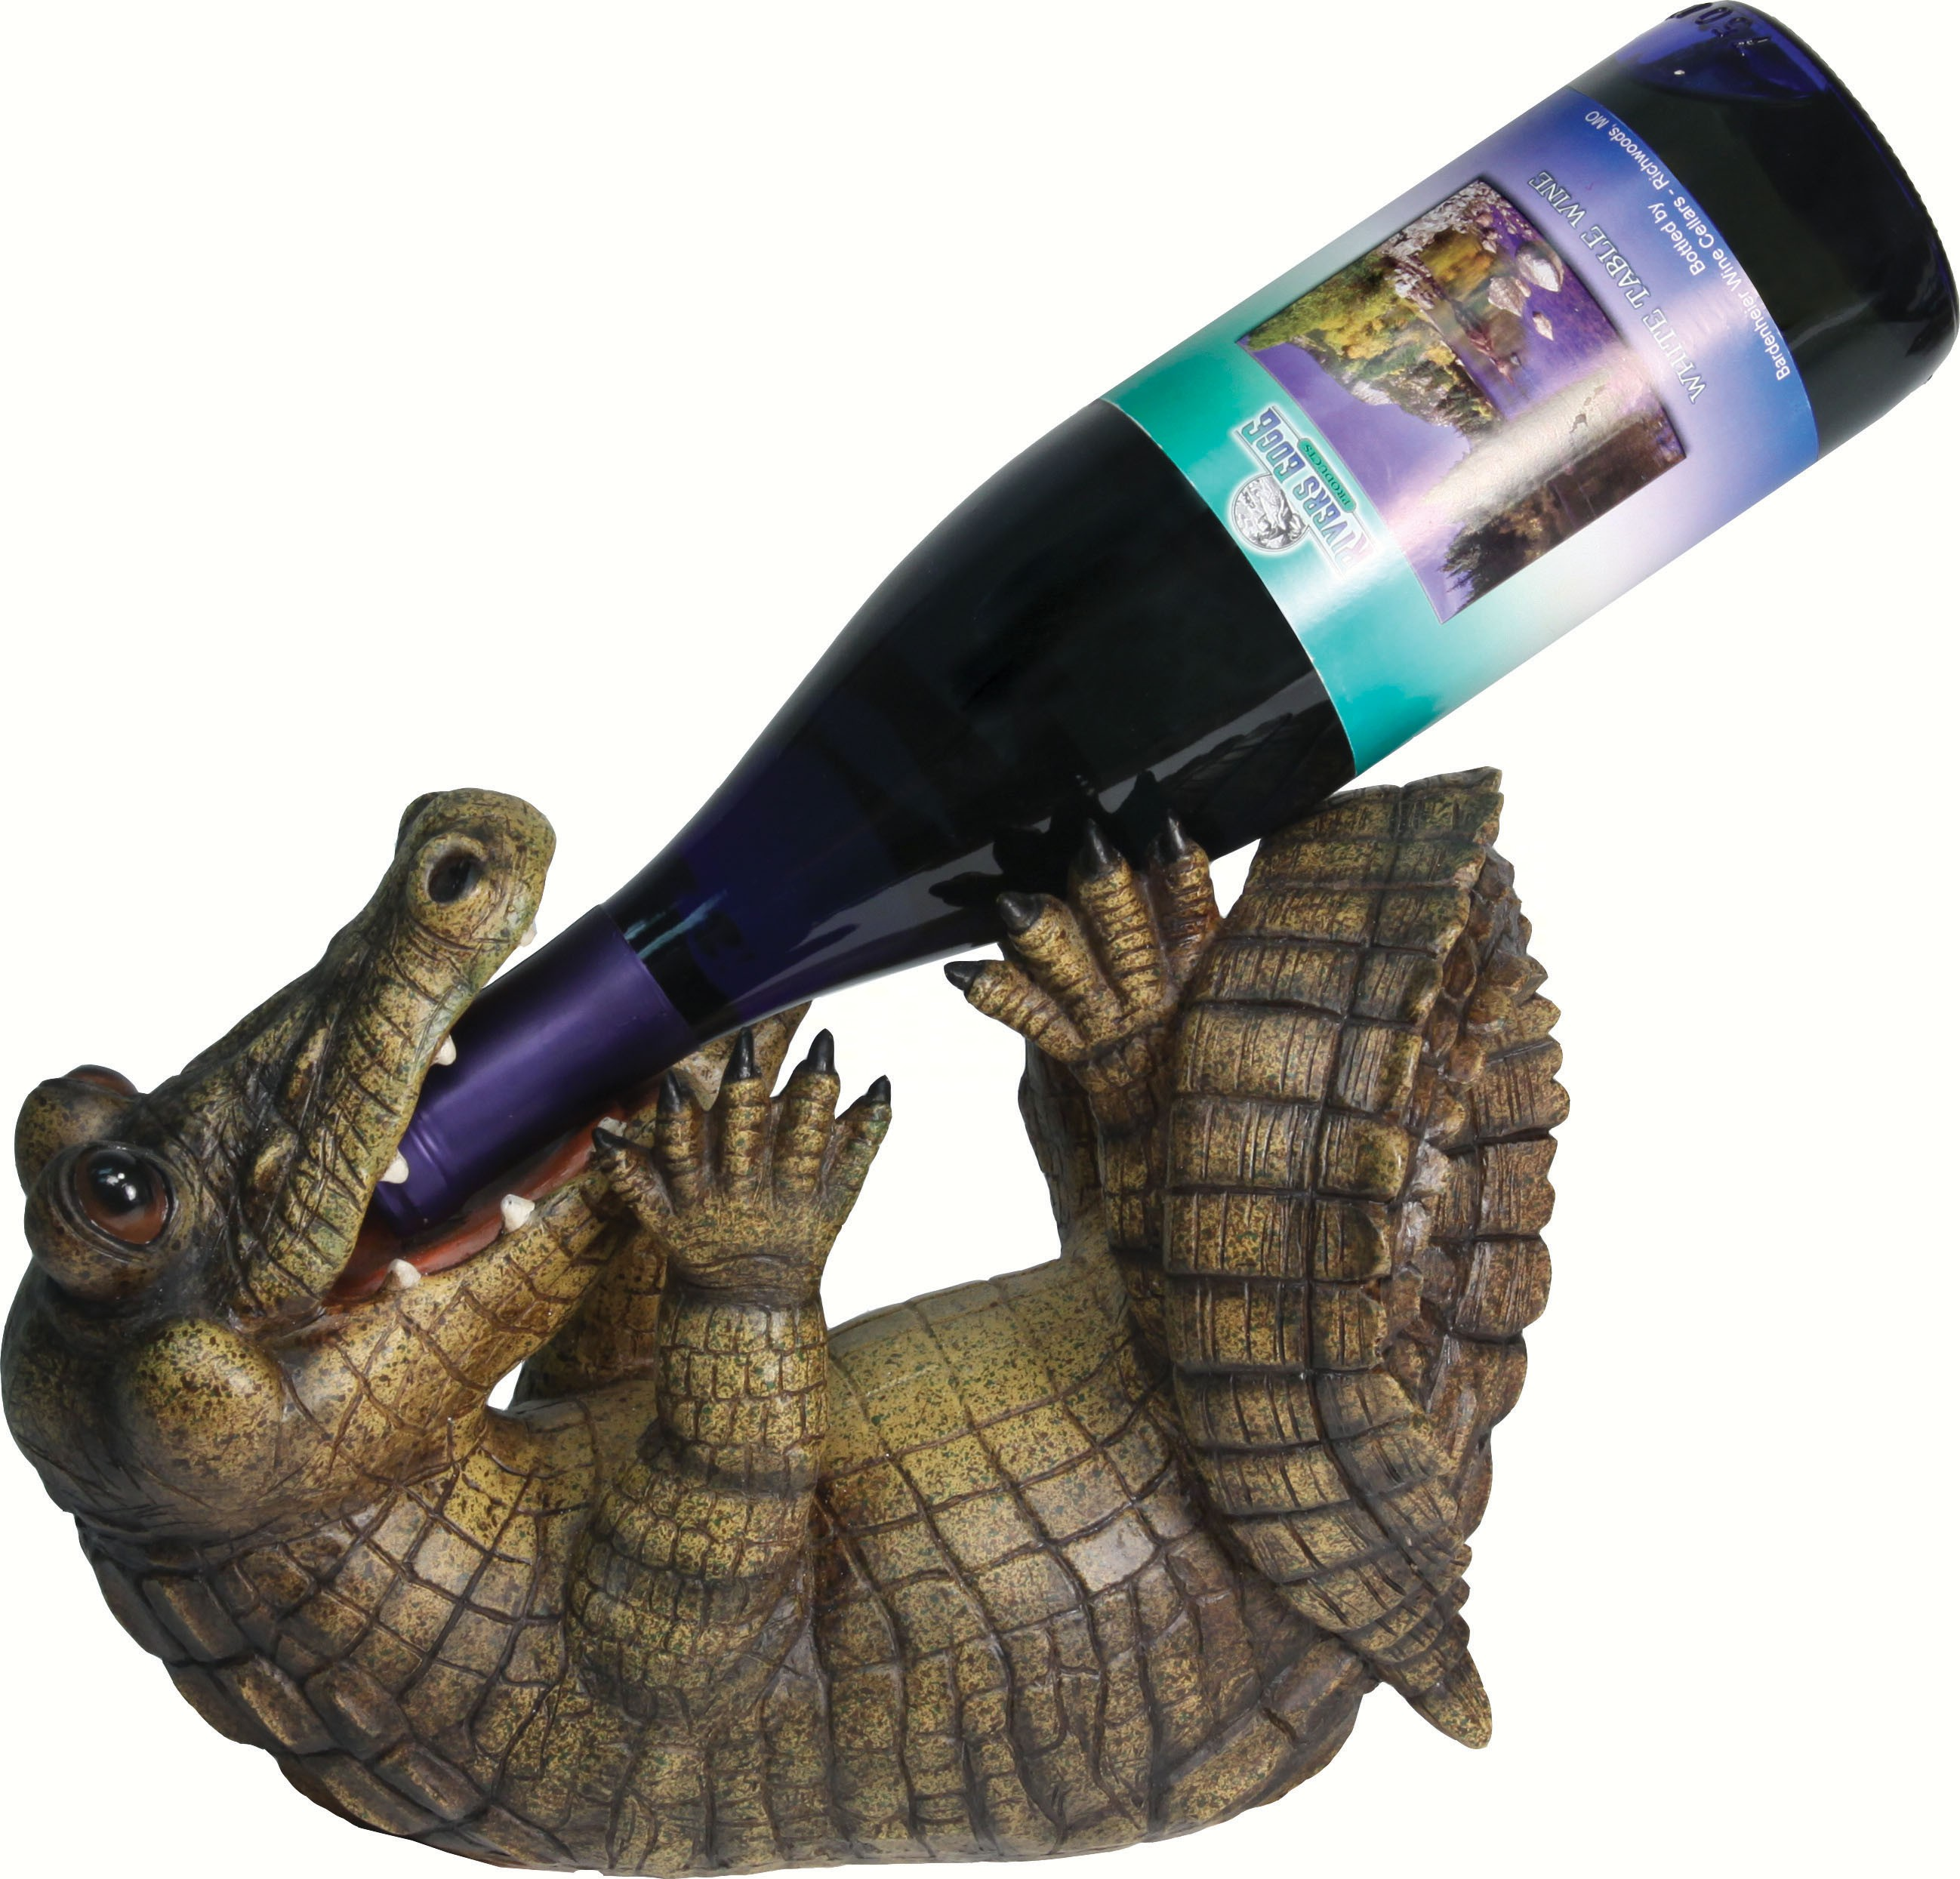 Alligator Wine Bottle Holder